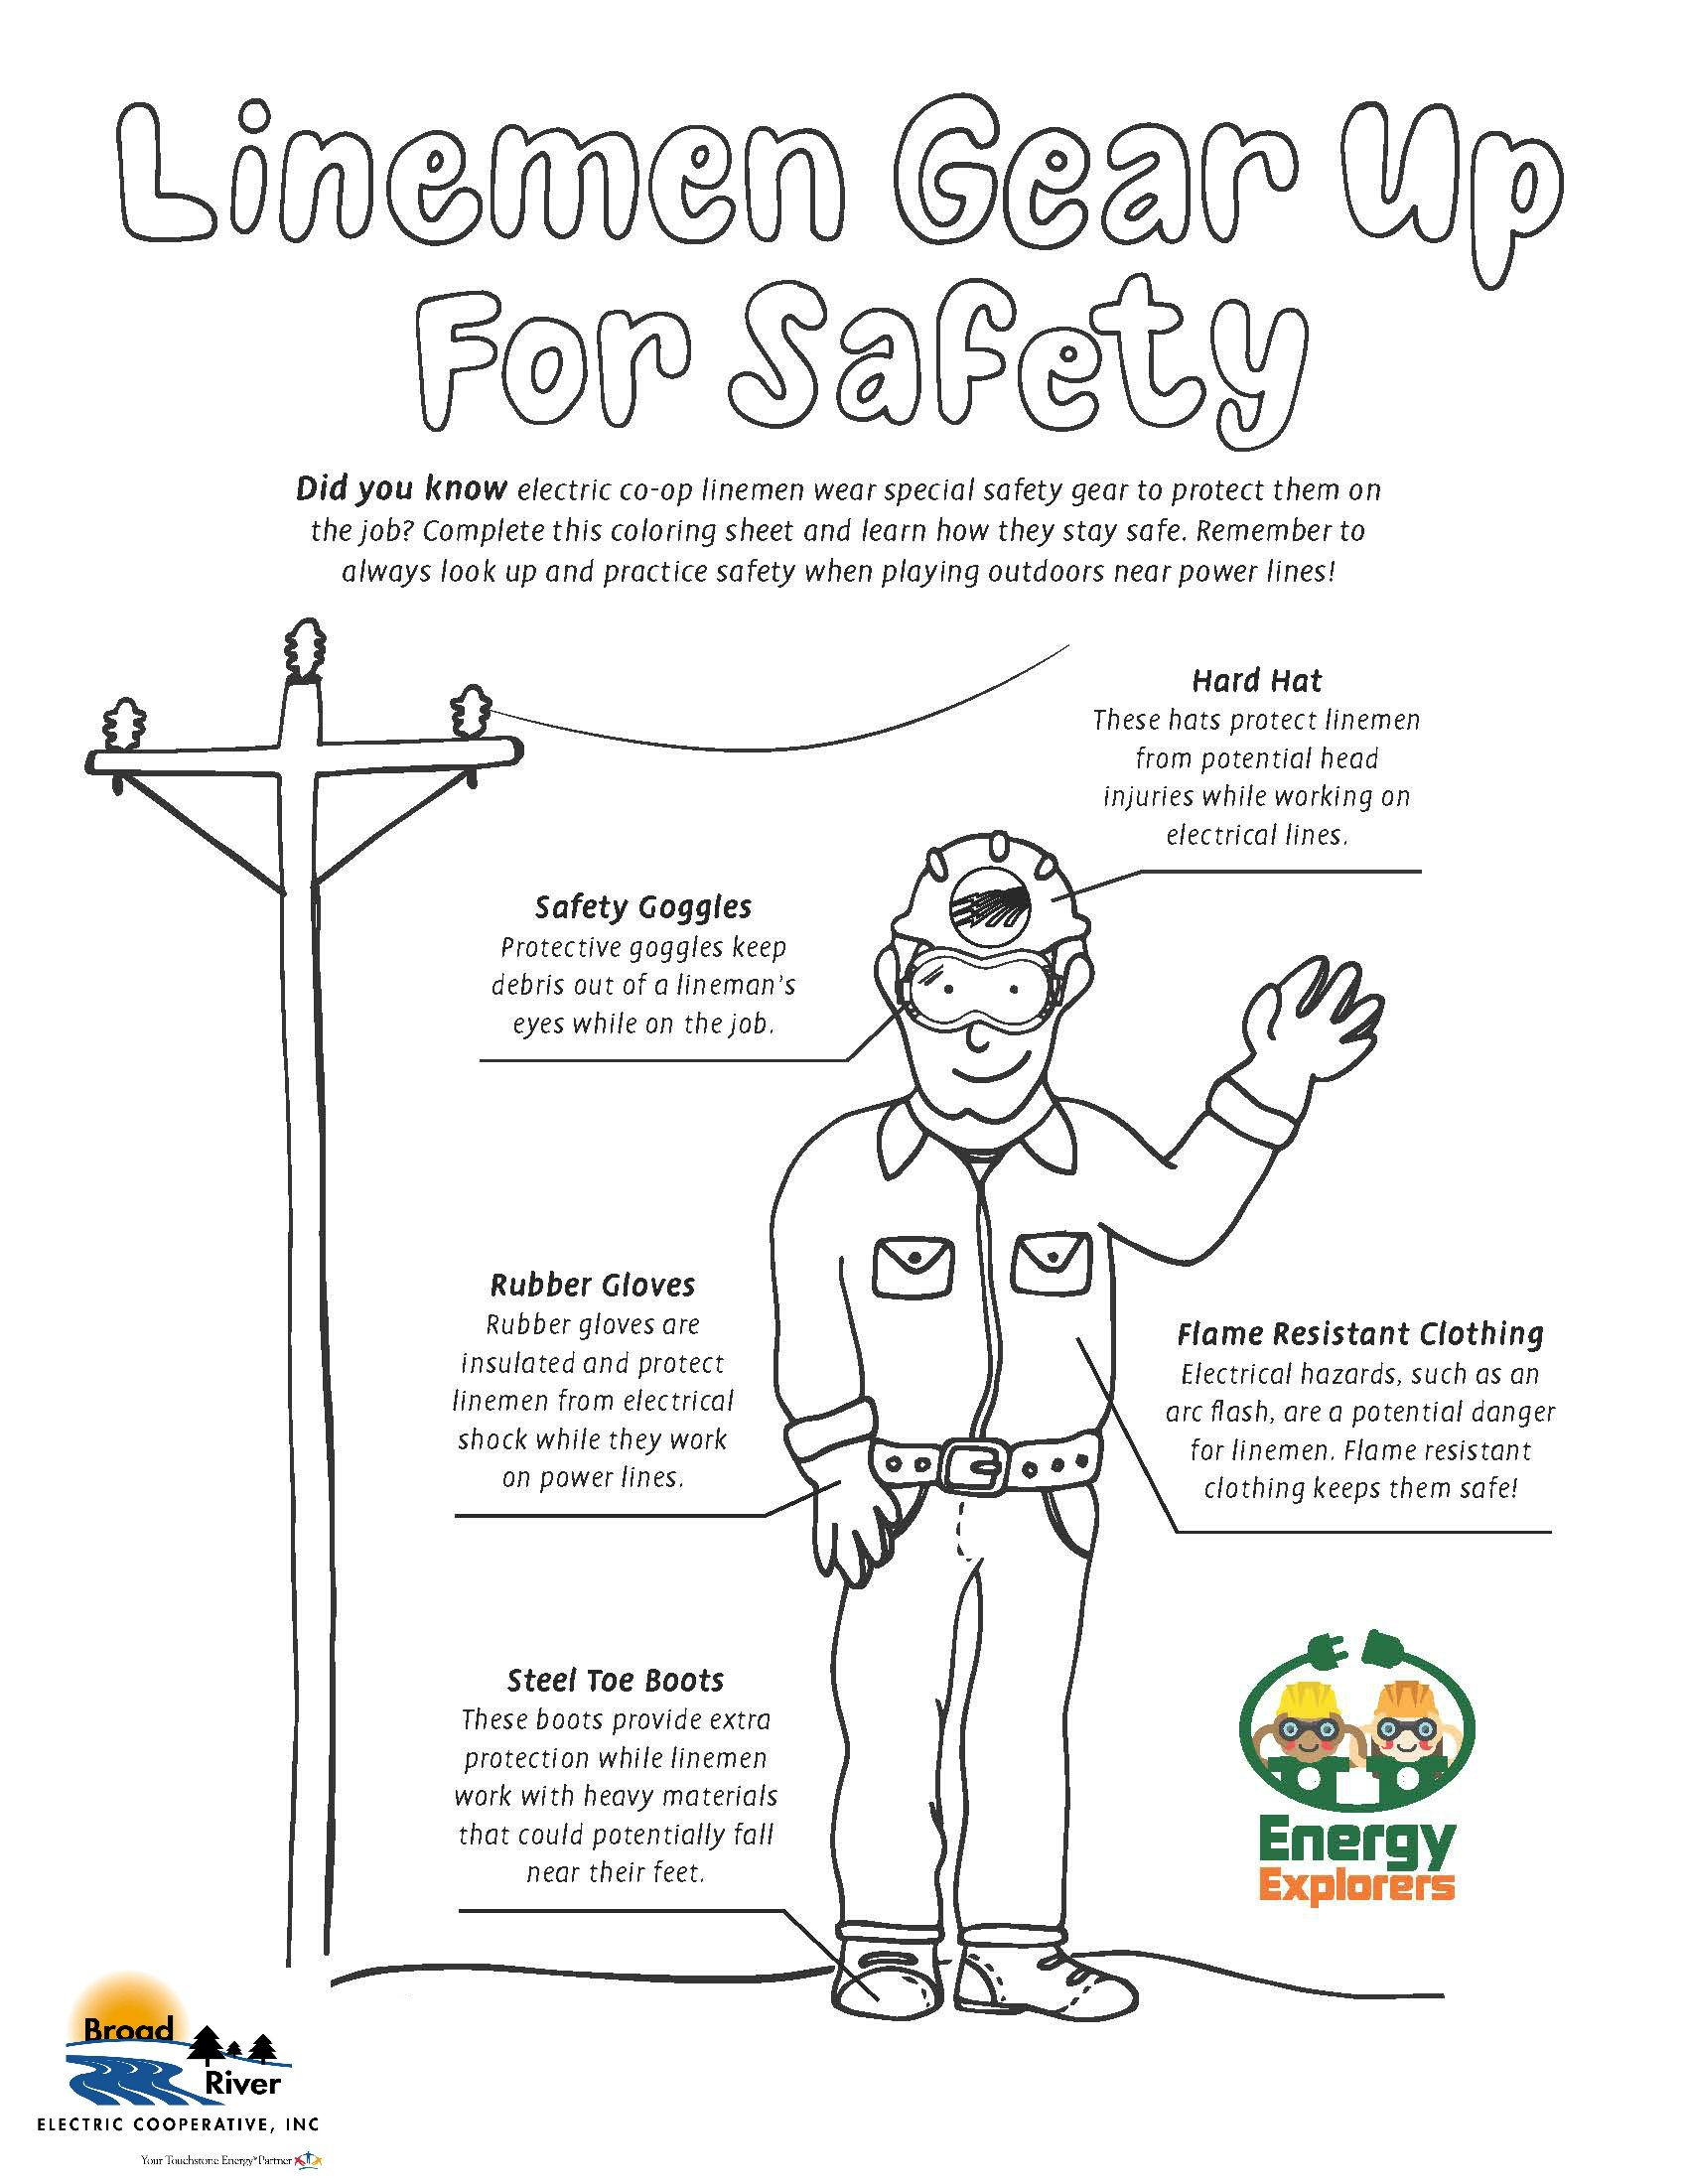 Energy Explorers Coloring Sheet Lineman Gear With Images